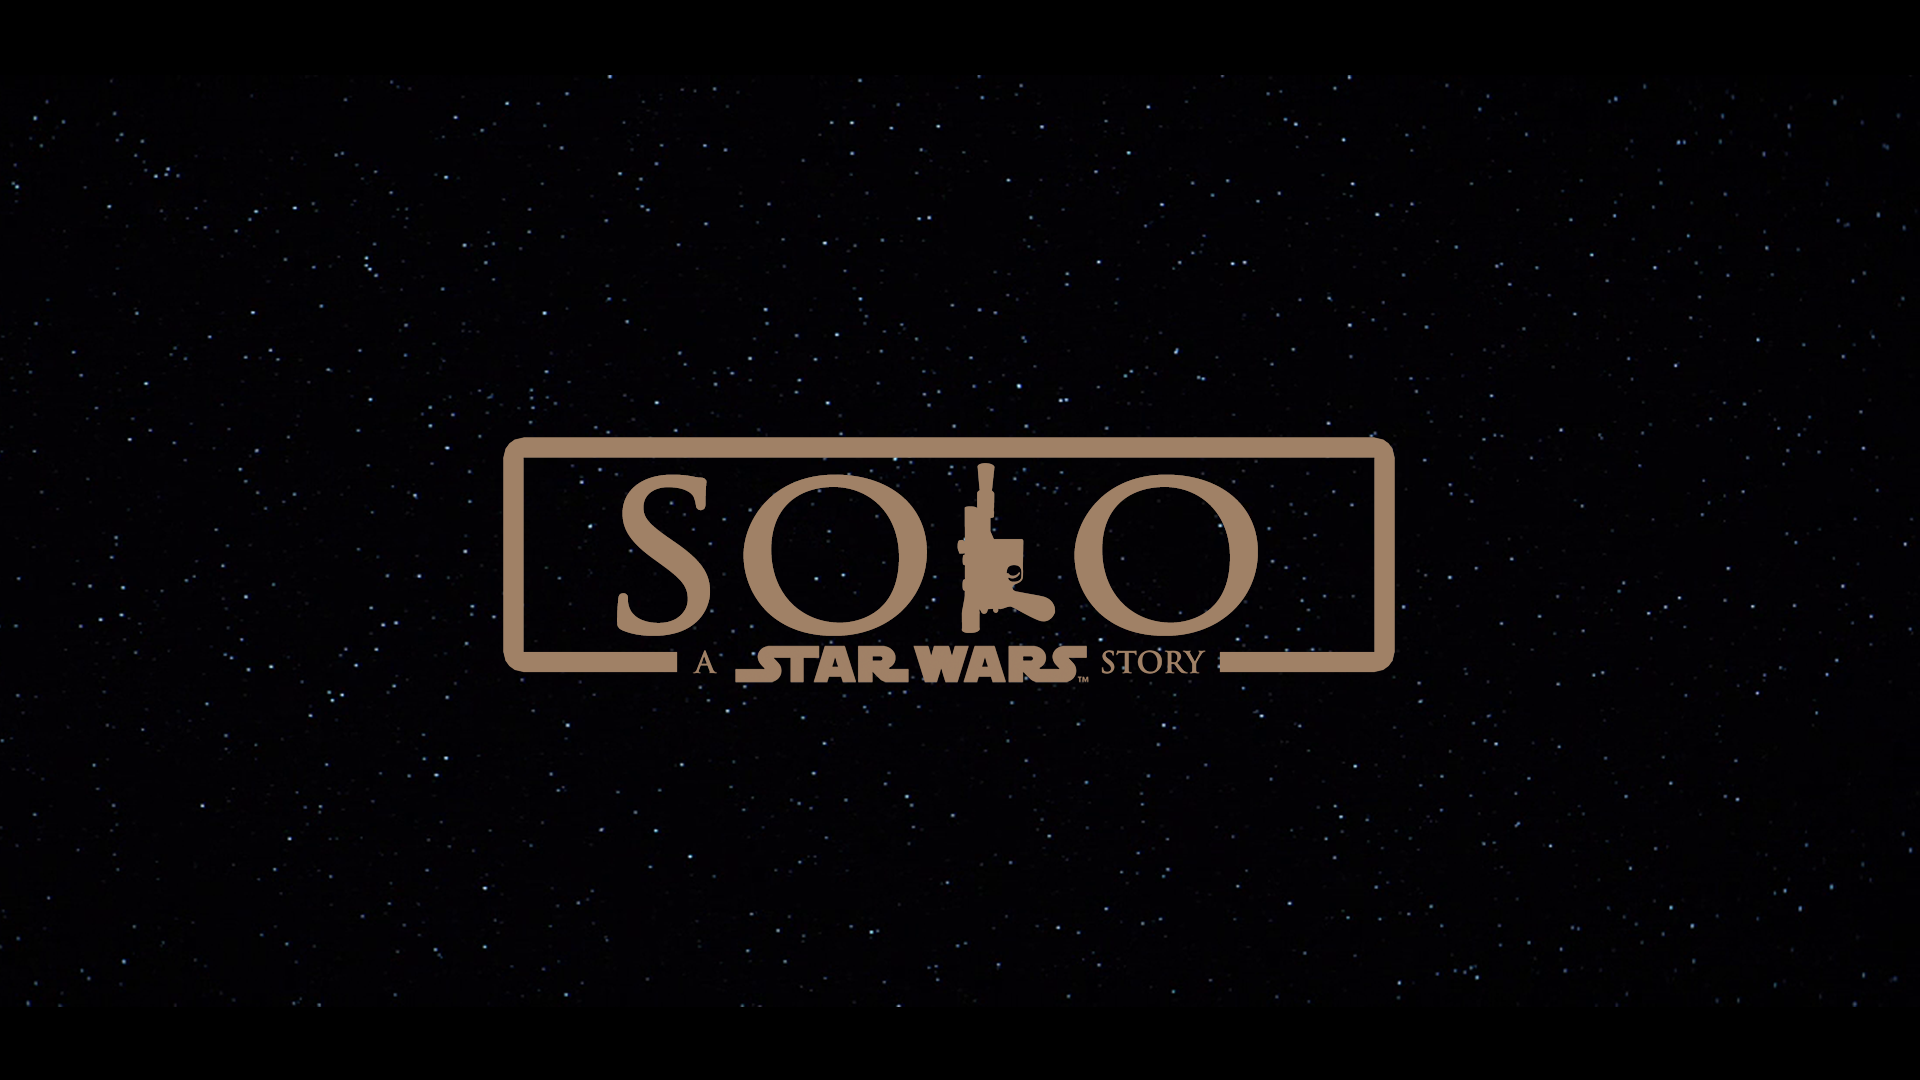 I did a Han Solo movie wallpaper based on some possible.